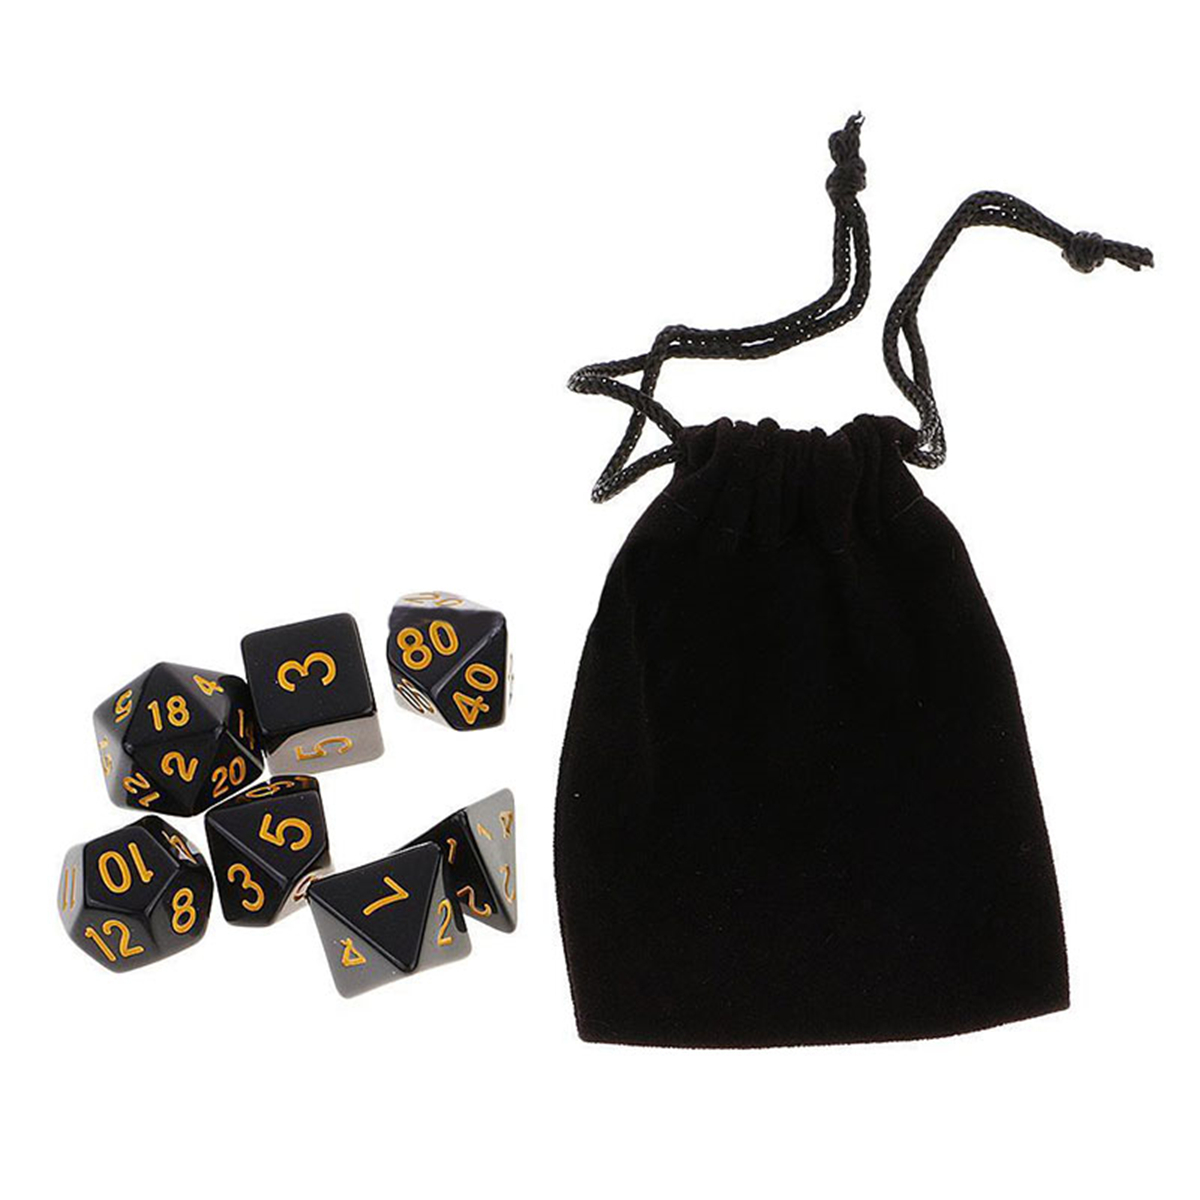 35 Piece Polyhedral Dice Set Multisided Dice With Dice Bag RPG Role Playing Games Gadget